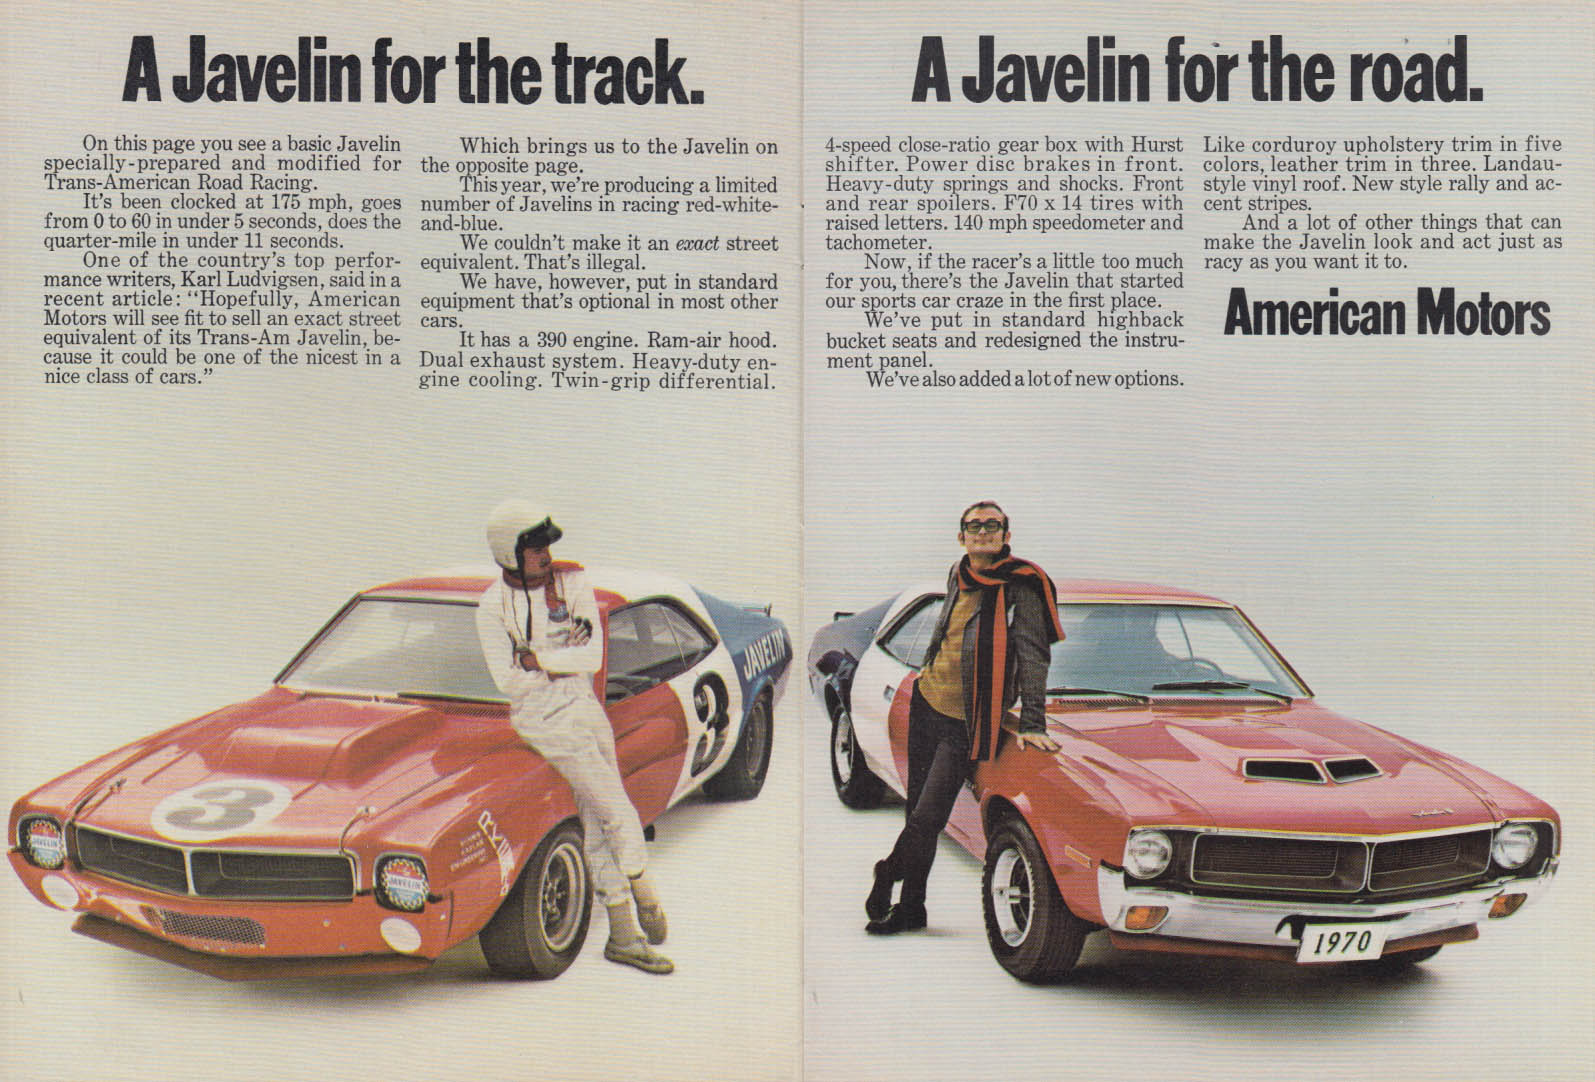 Image for A Javelin for the road A Javelin for the track ad 1970